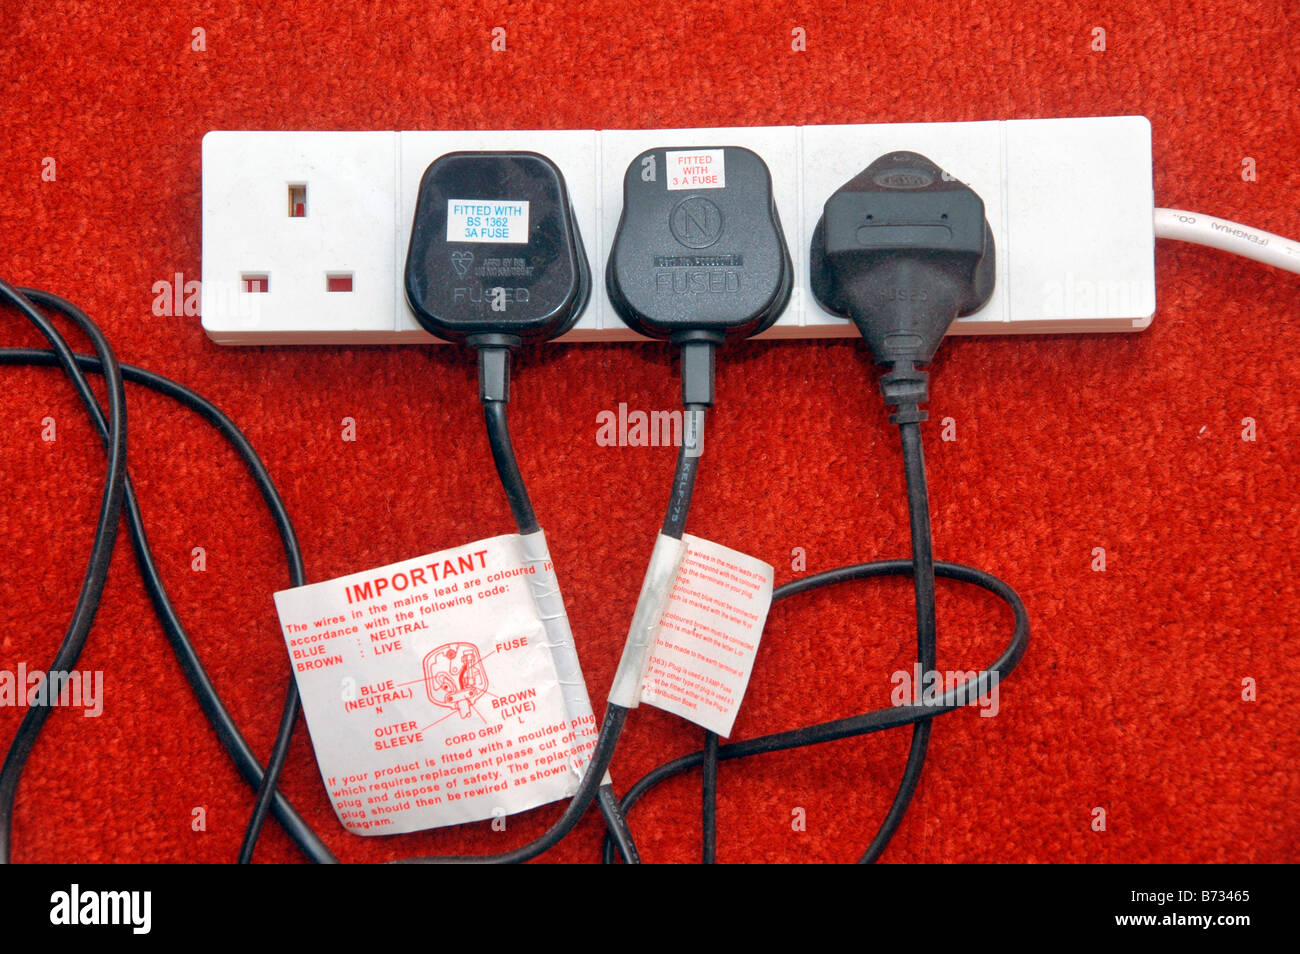 Electrical Wiring Plugs Stock Photos A Plug Replacing And Rewiring Electronics Four Extension Lead With Three Connected To It Image